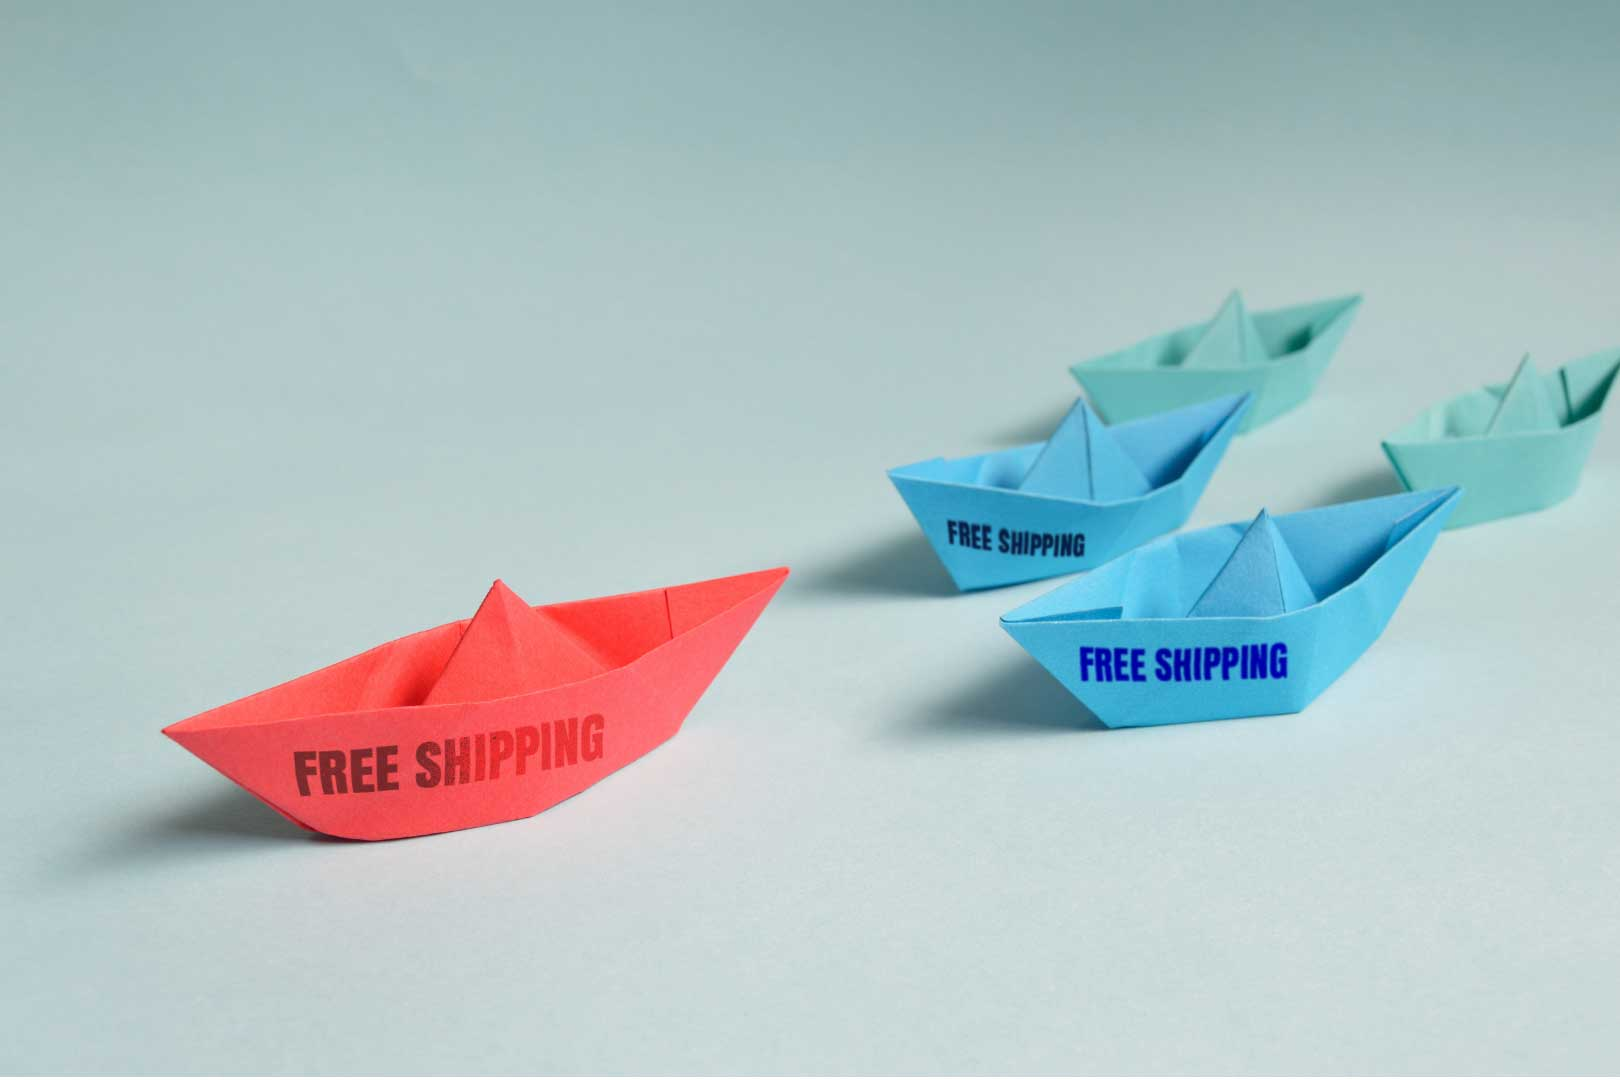 All-of-Your-E-commerce-Competitors-Offer-Free-Shipping